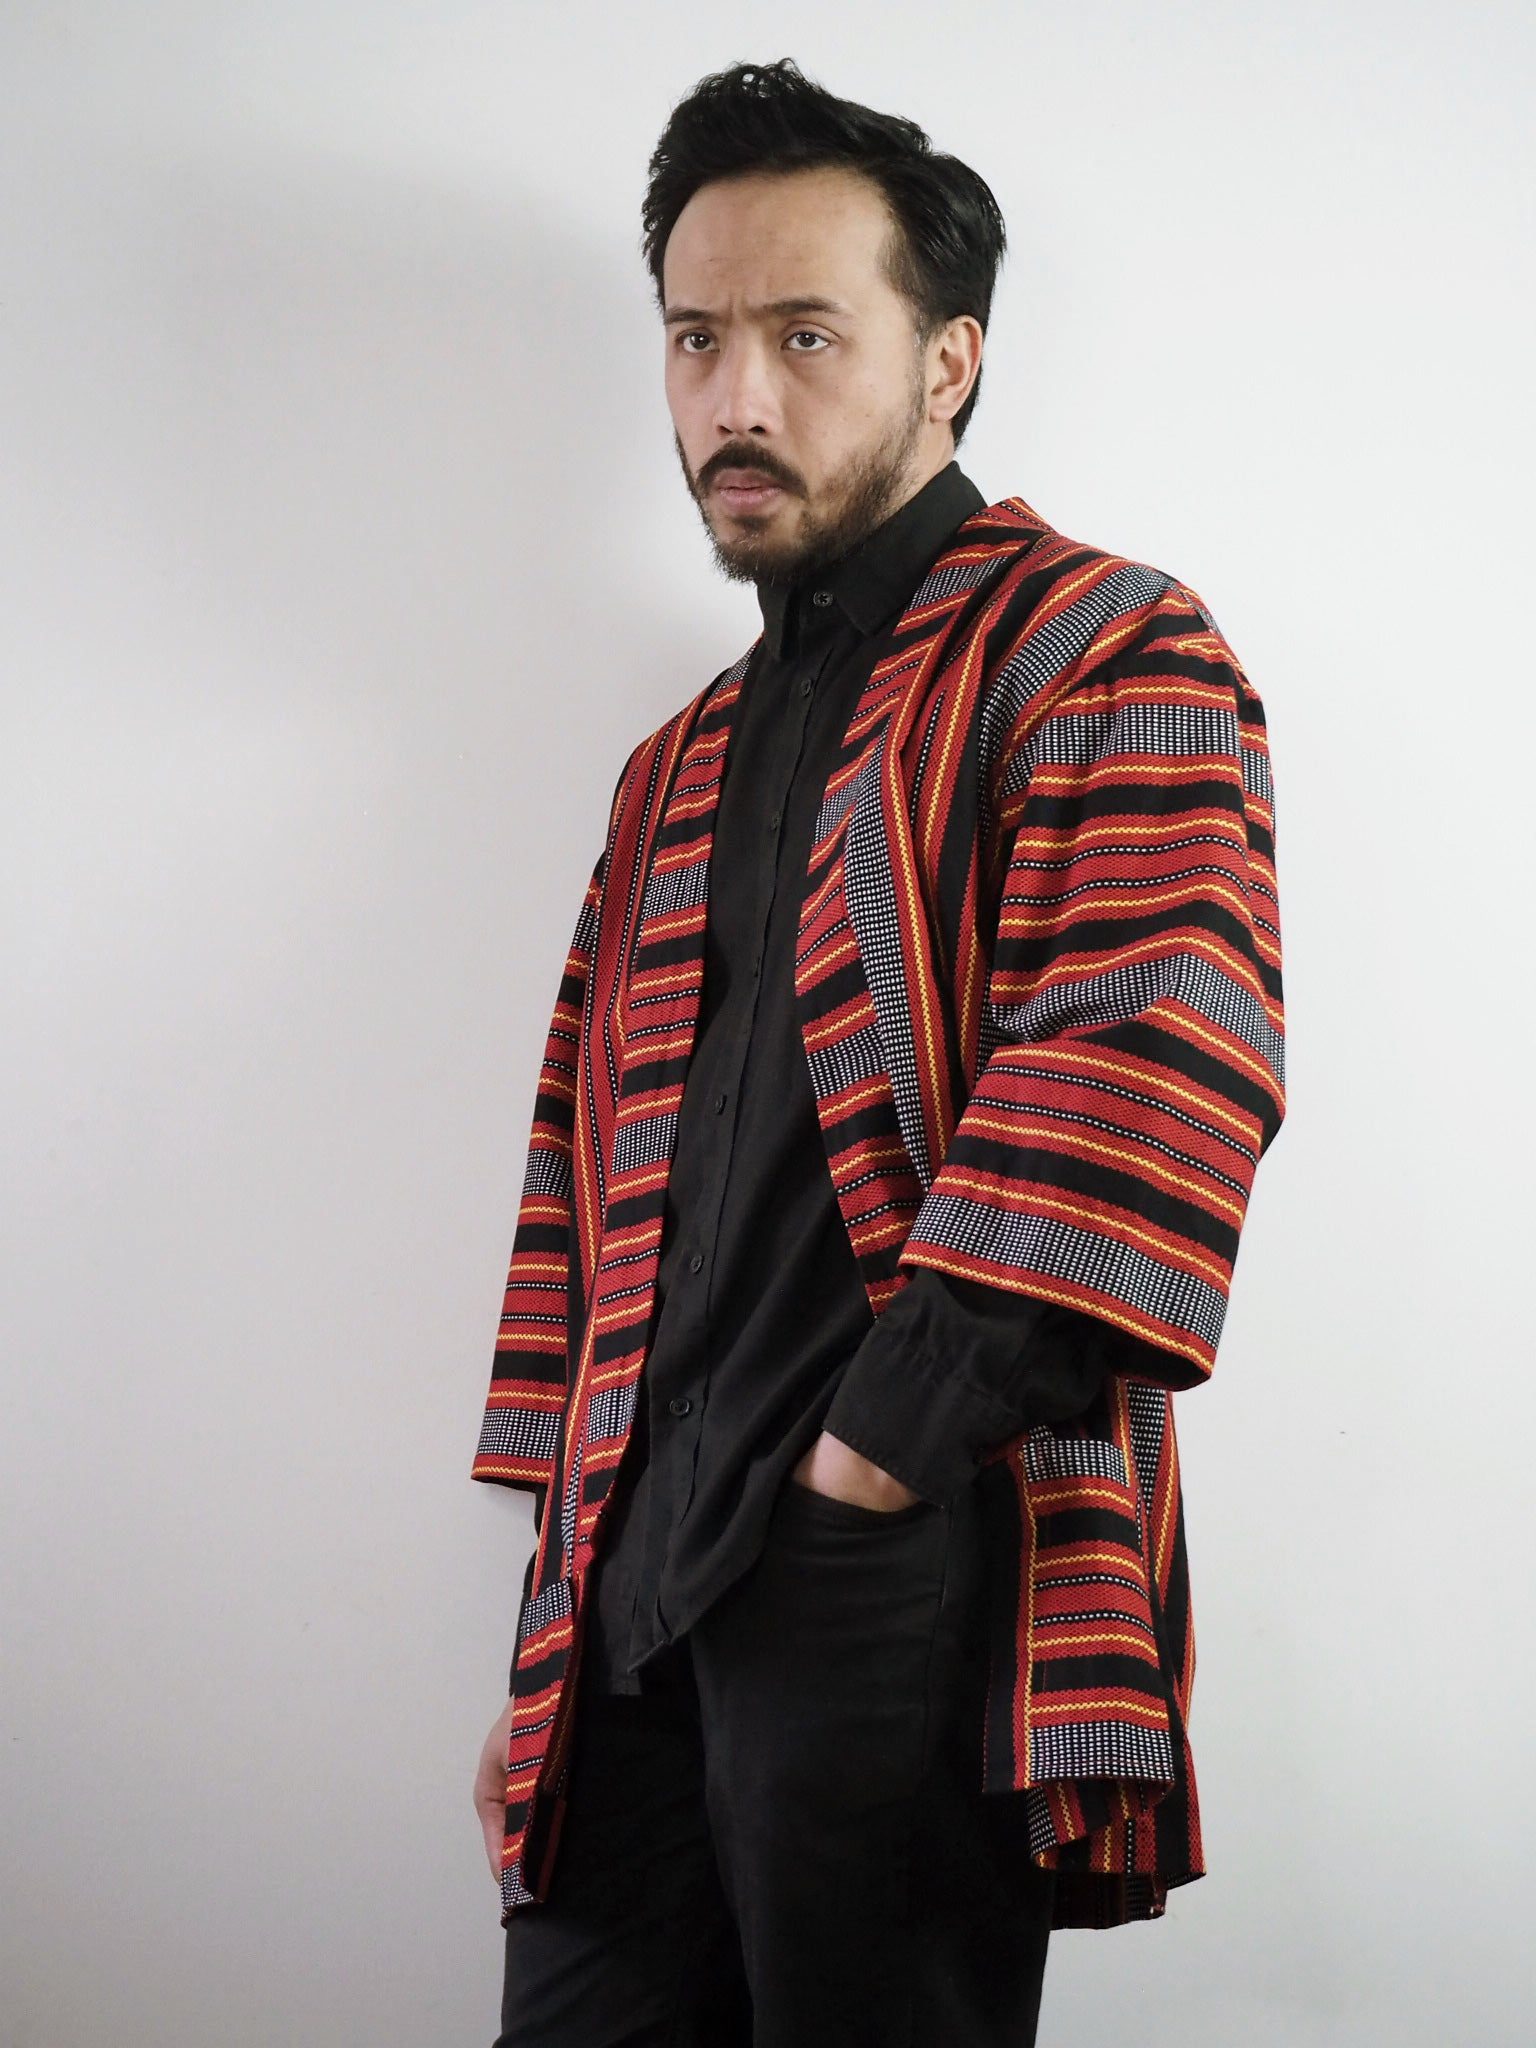 VINTA Unisex Printed Ifugao Jacket on Darrel 3/4 View